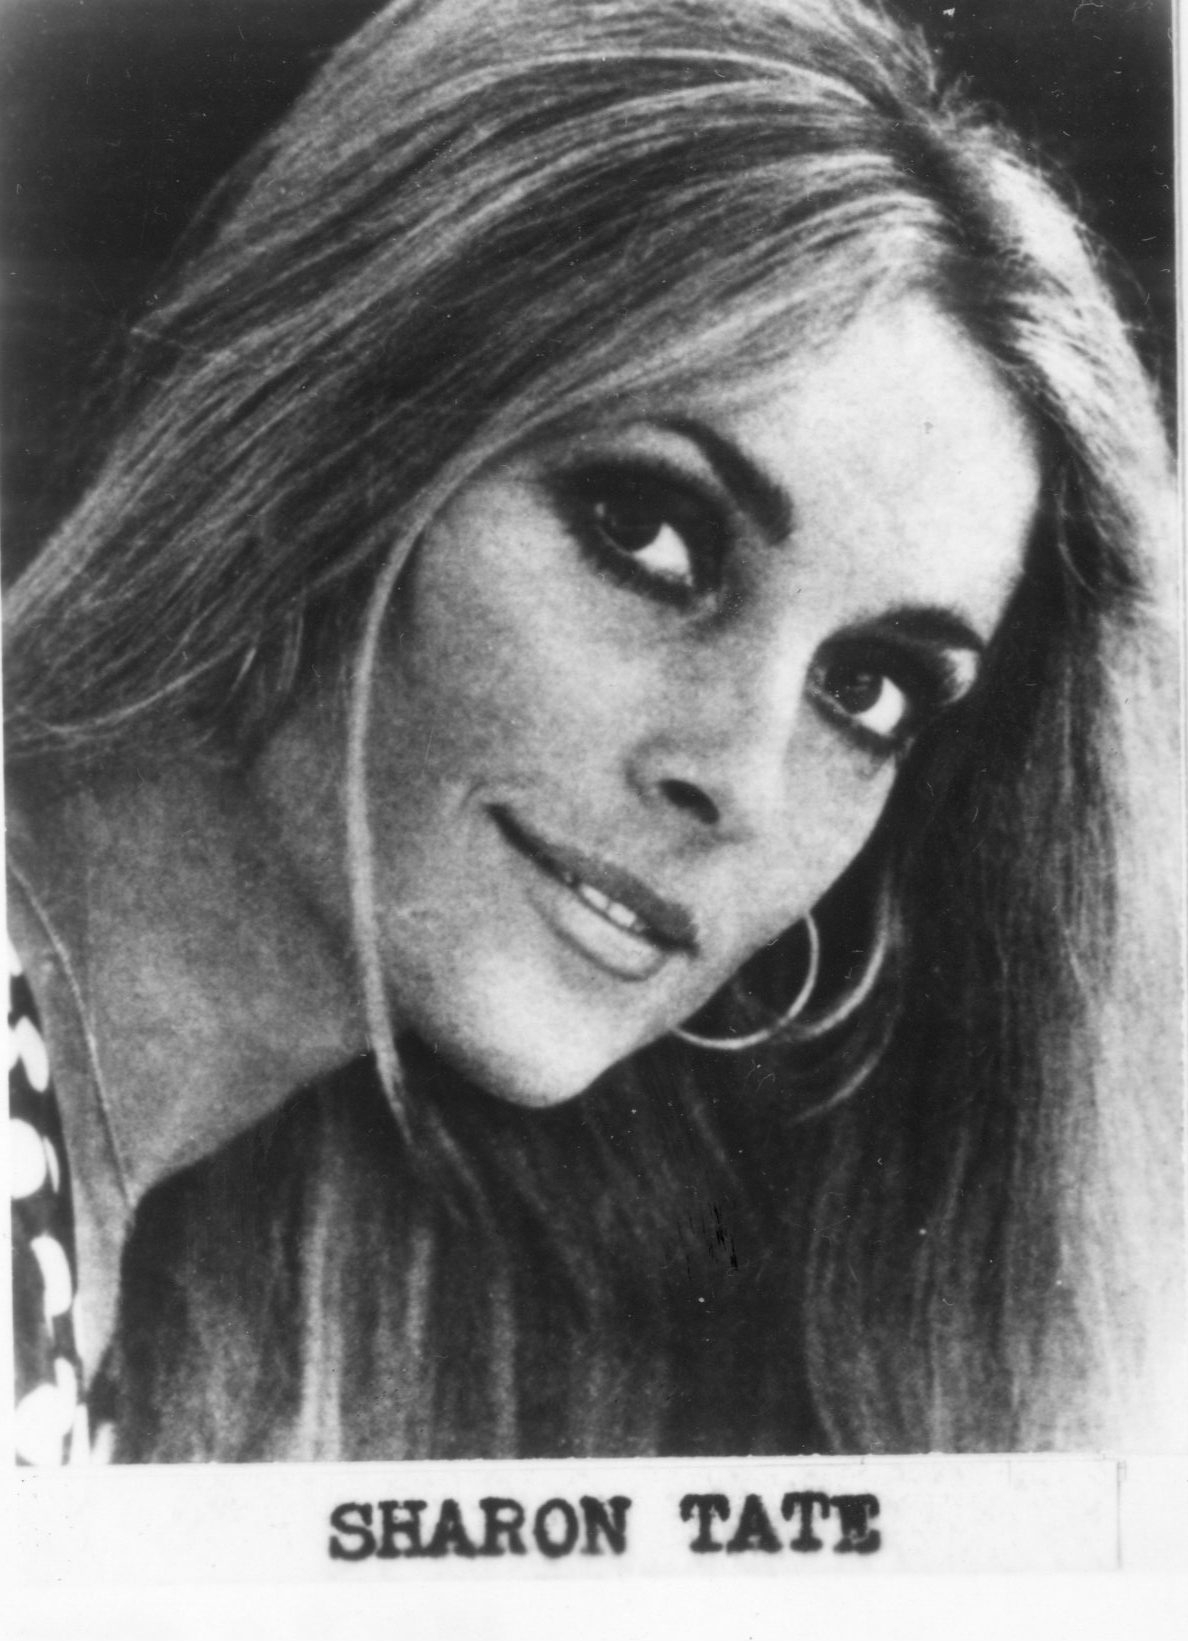 As poet Ed Sanders sees her, Sharon Tate was always surrounded by danger and, in fact, doomed.